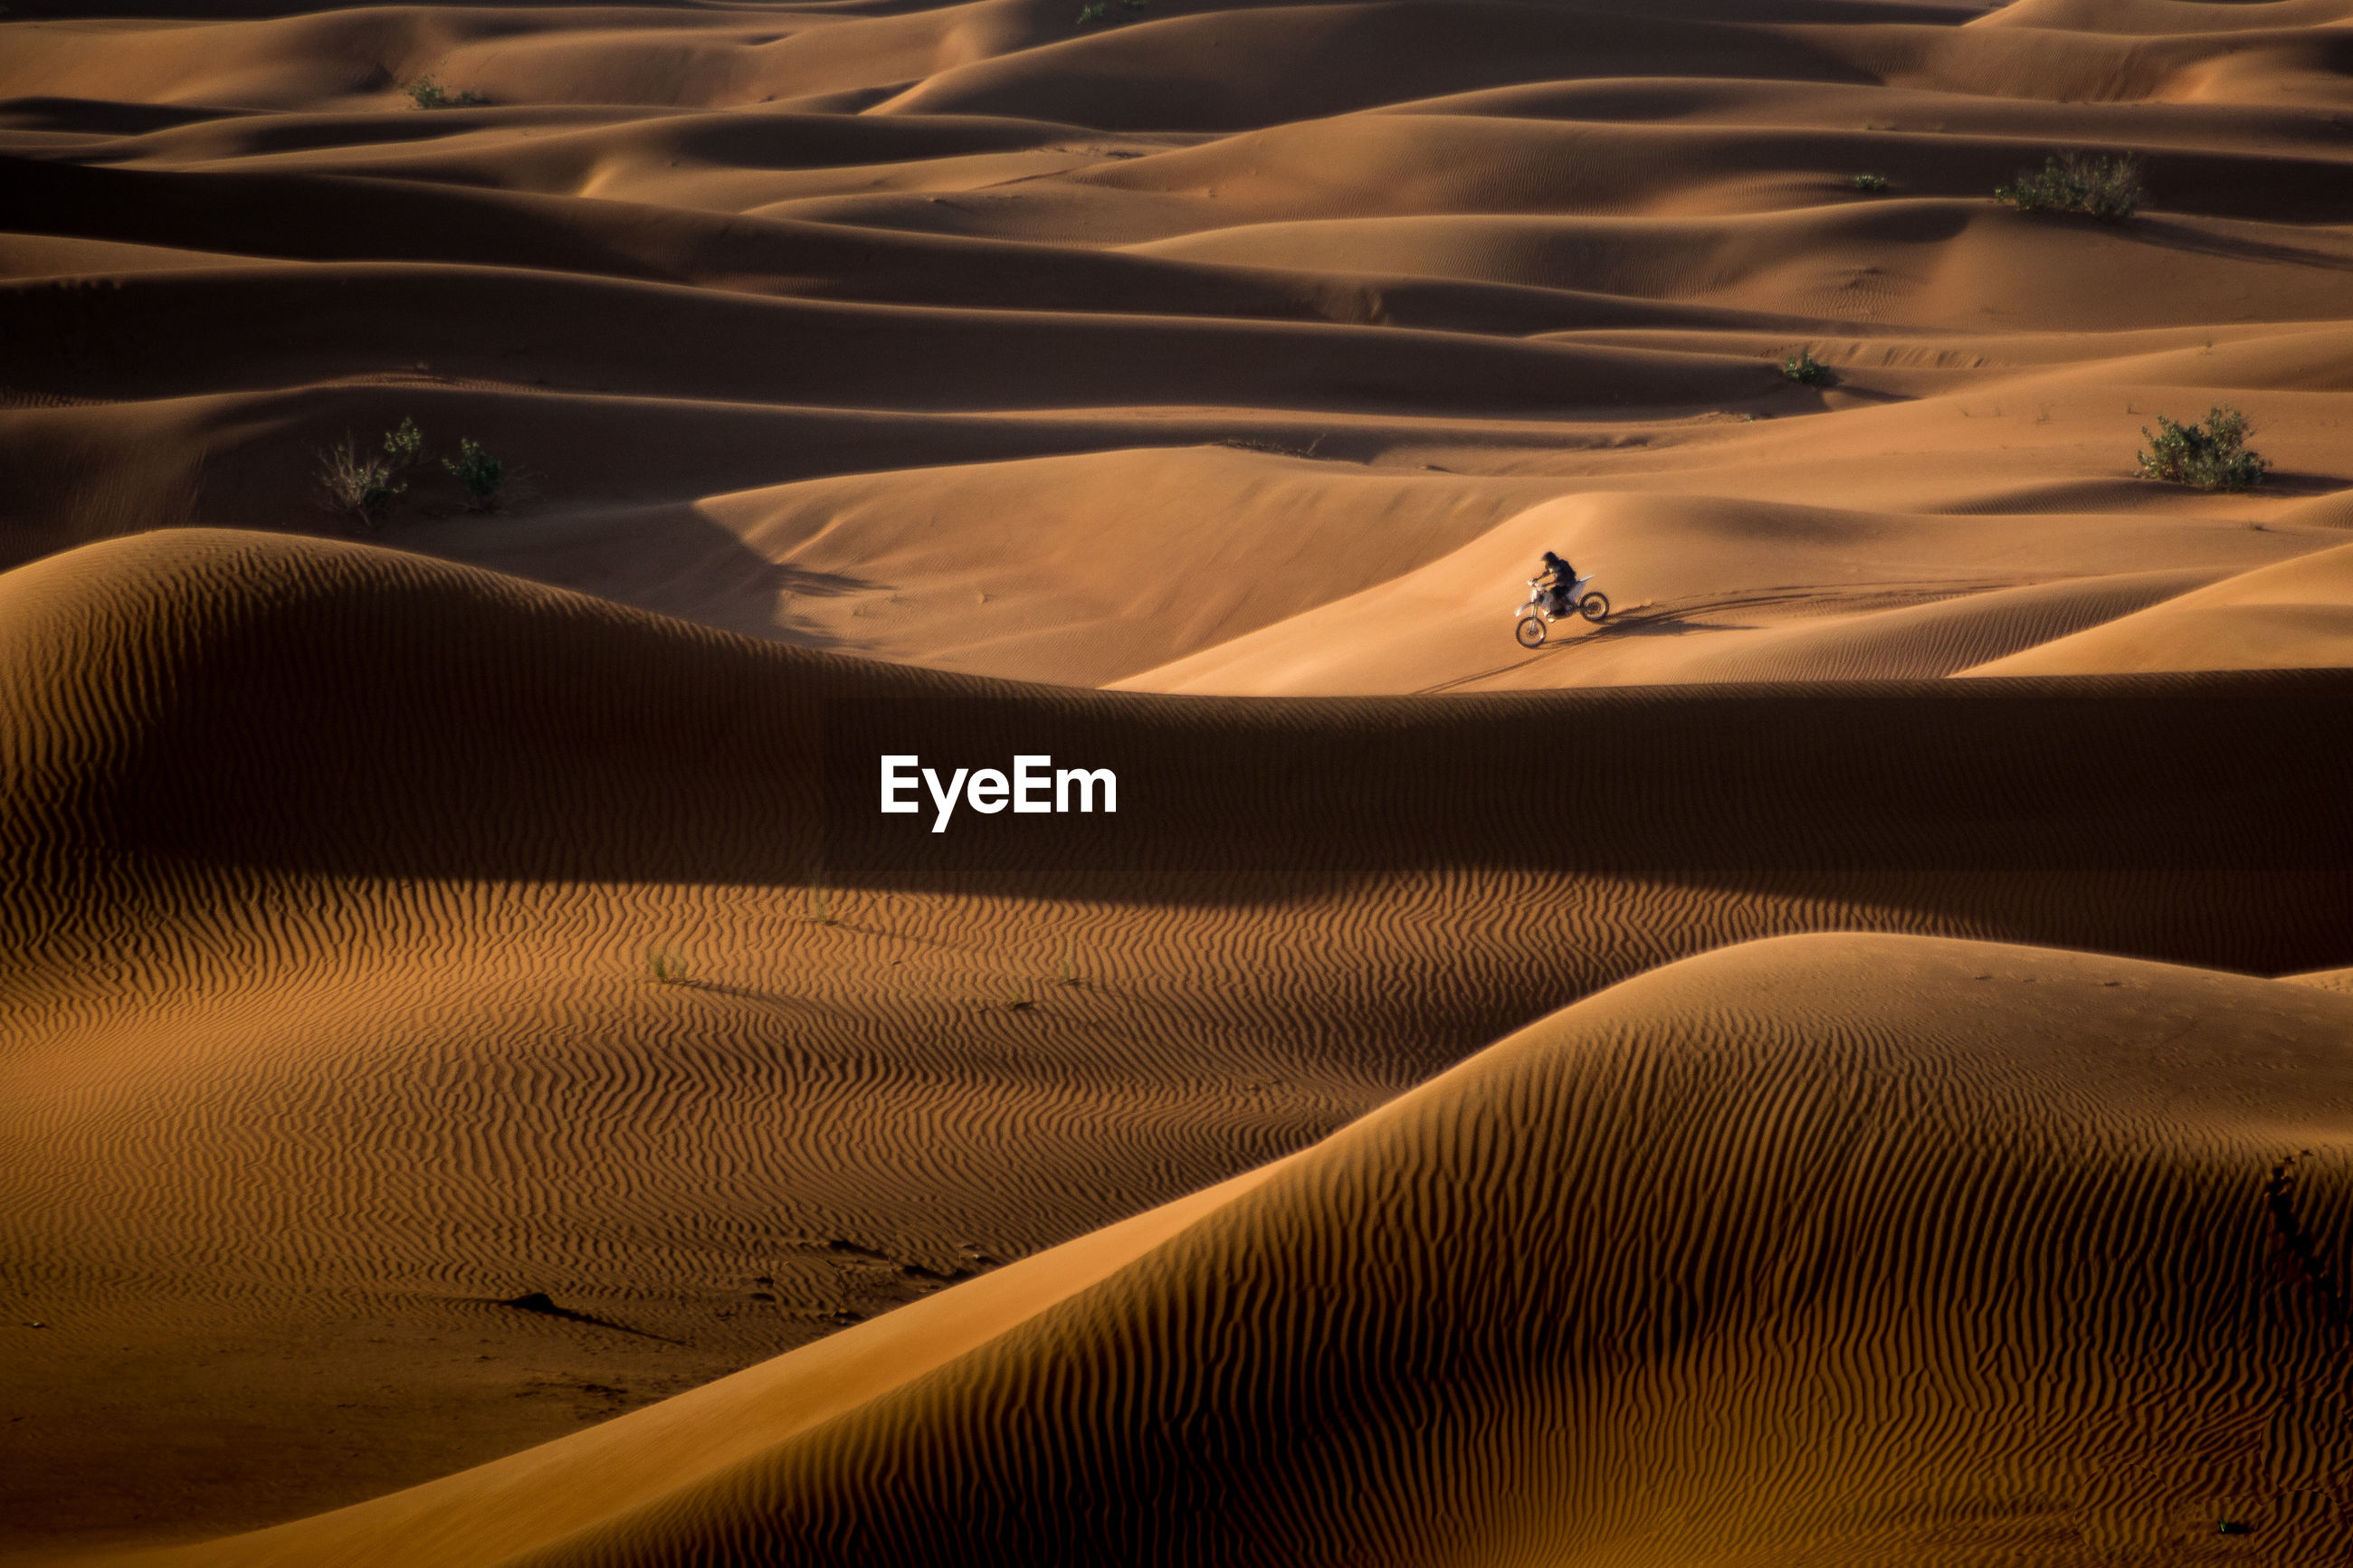 High angle view of man riding motorcycle on sand at desert